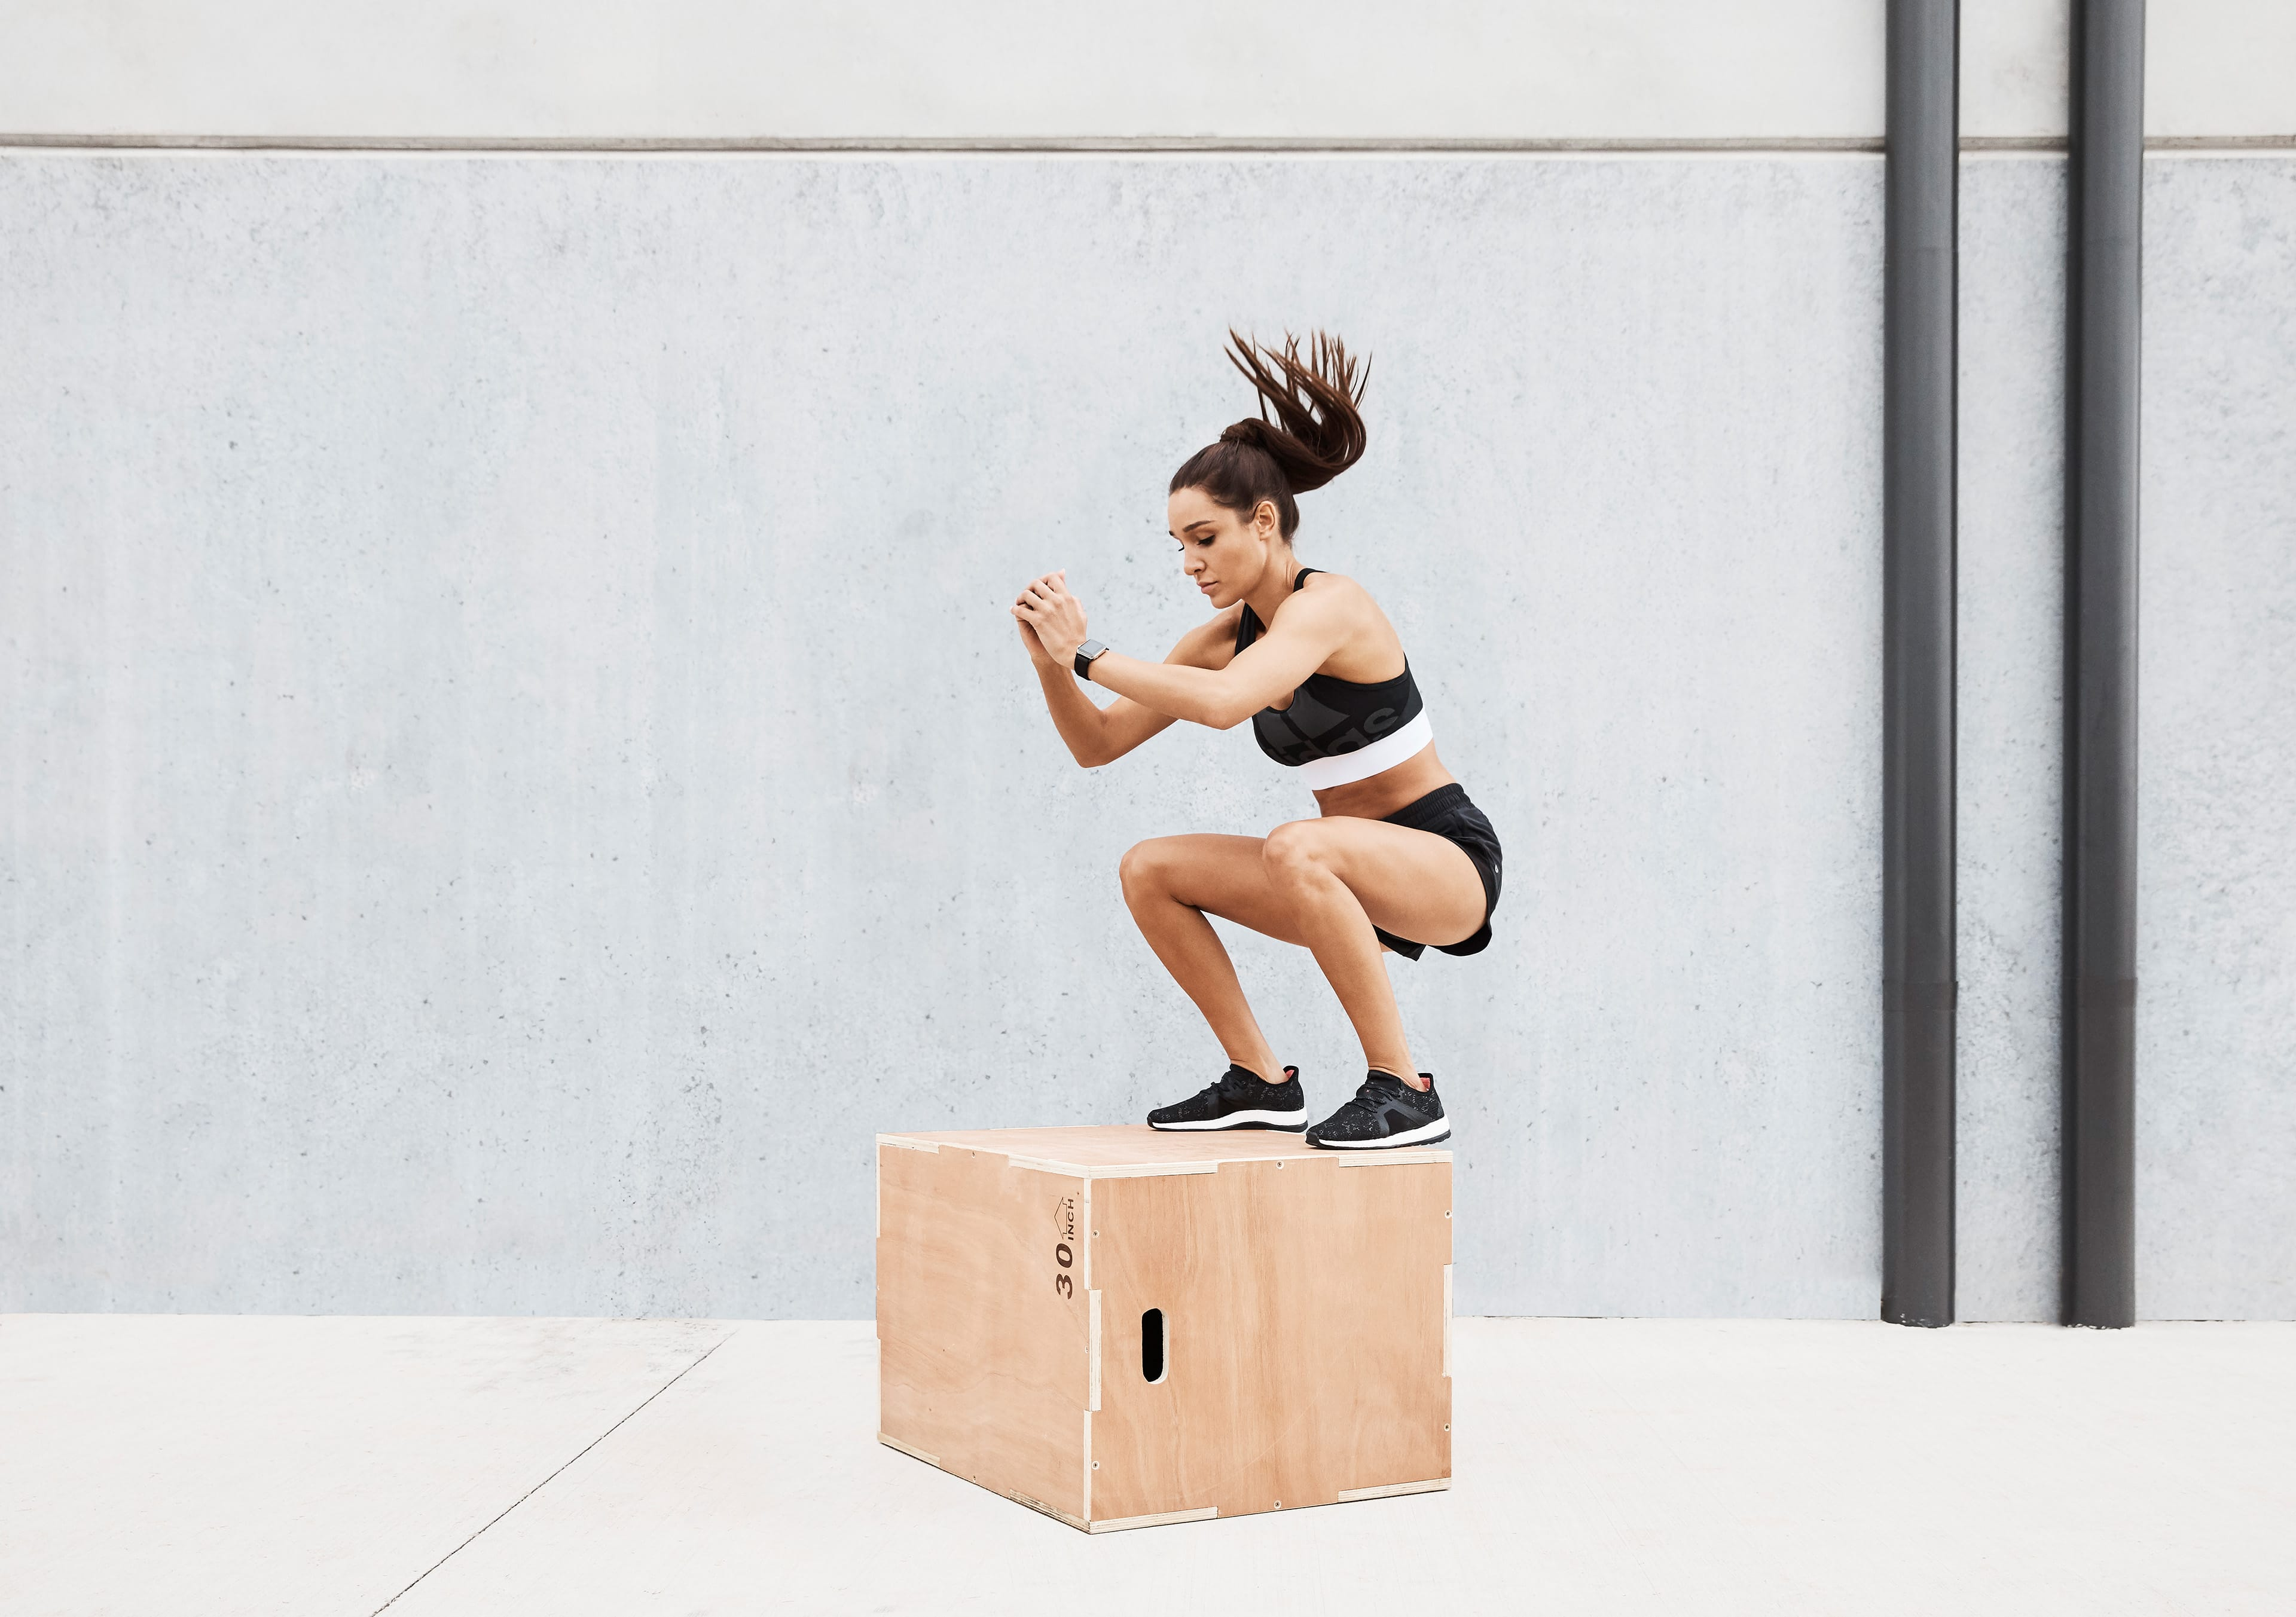 Burpee Variations To Progress Your Fitness